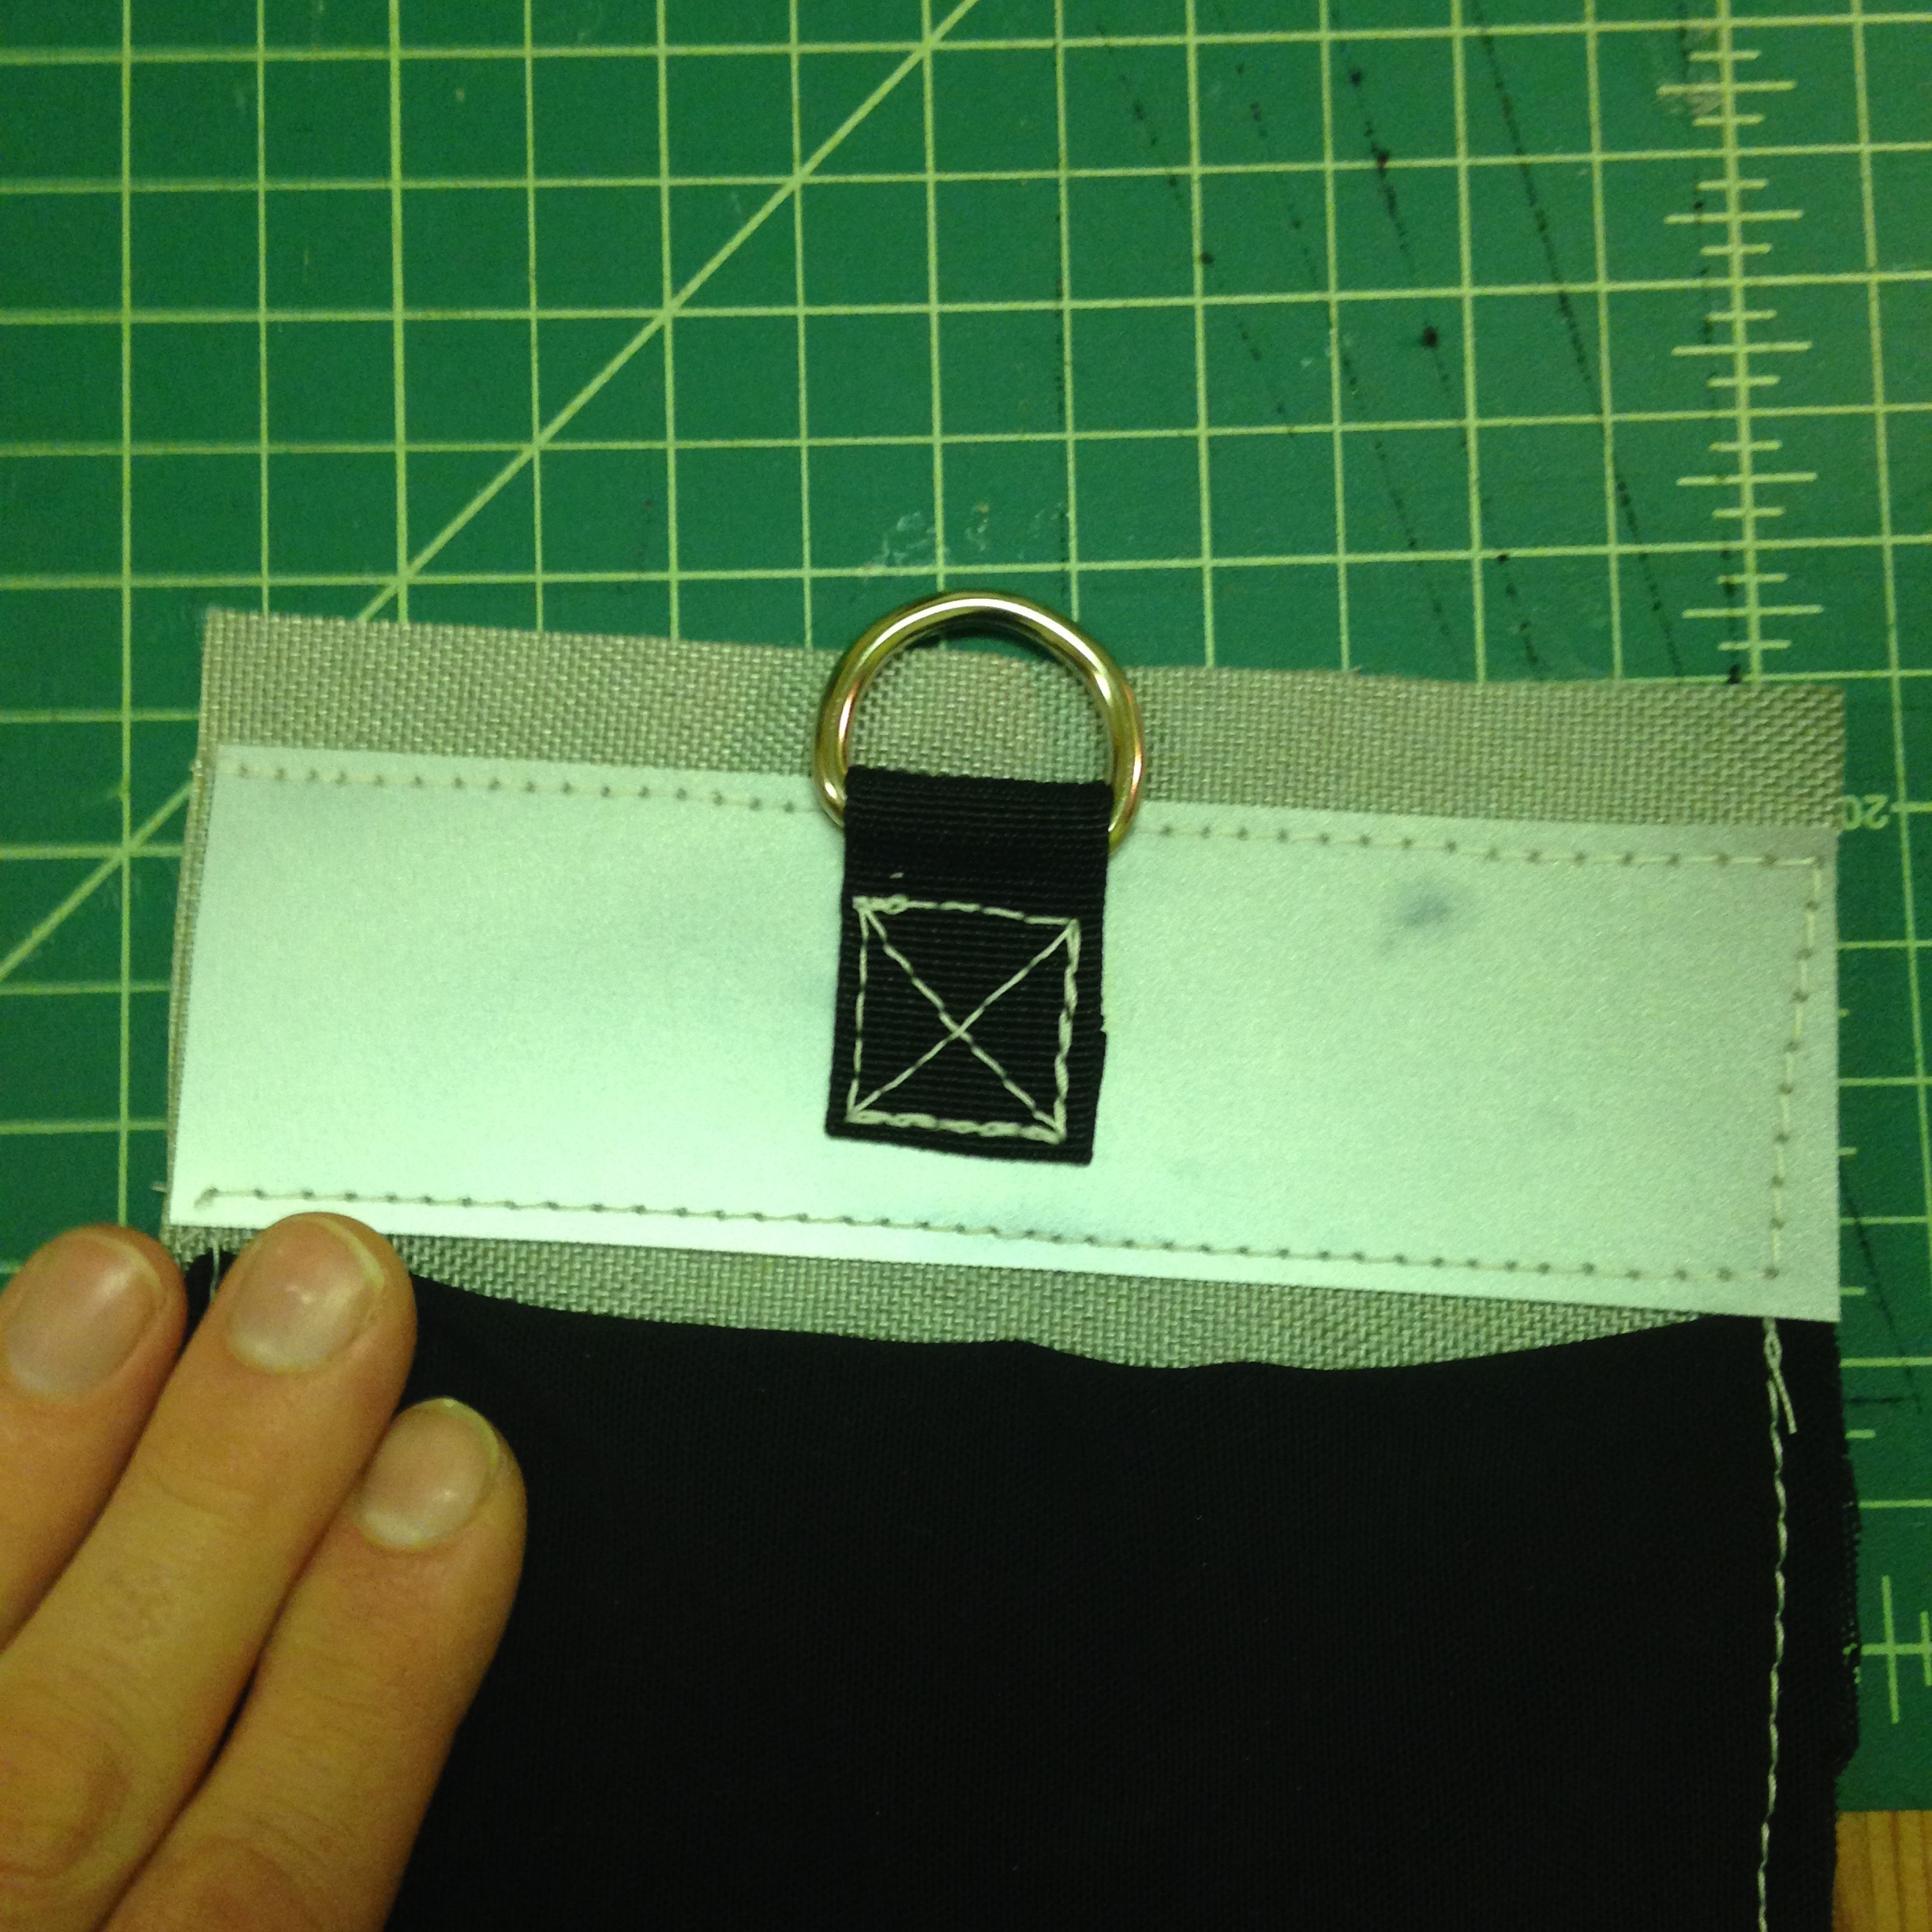 Picture of Sew on Side Pockets (optional), Sew on Reflective Tape (optional), Sew on D-rings (optional), Sew Side Panels to the Bottom Panel (not Optional)